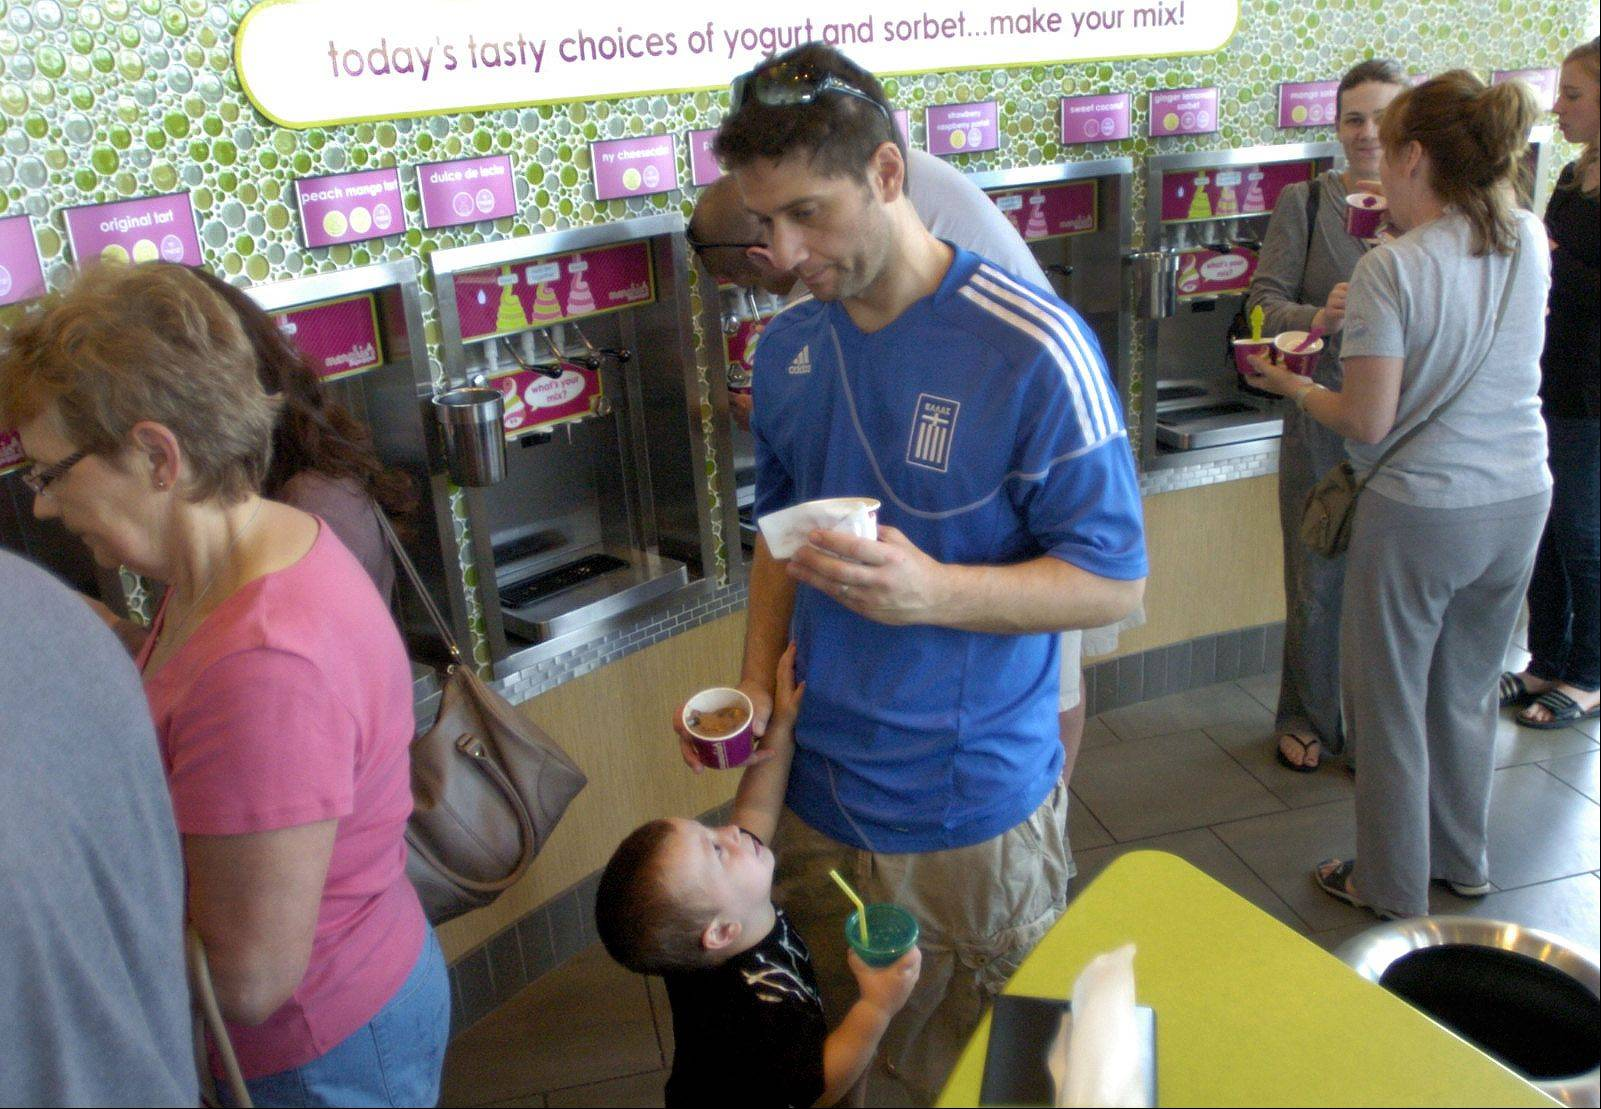 Alex Michalakos and his son, Elias, sample some of the free frozen yogurt given out during the grand opening of the new Menchie's frozen yogurt in Mount Prospect June 2.